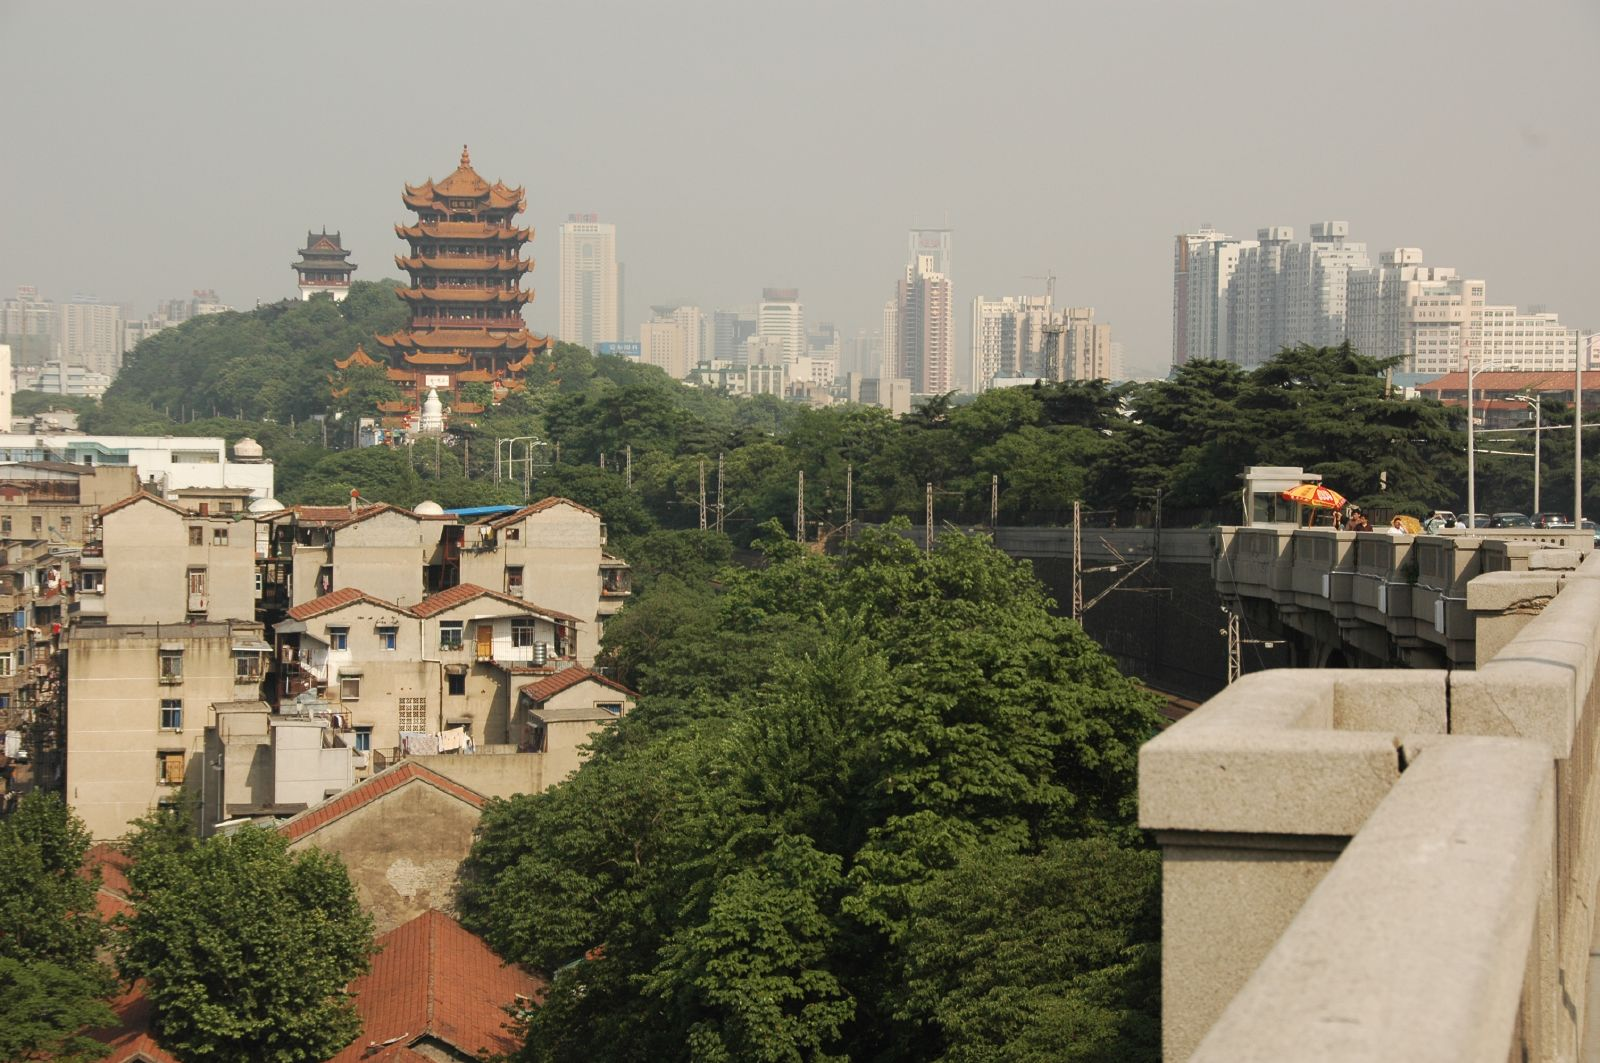 The Guardian:  China to lift travel restrictions in Hubei after months of coronavirus lockdown